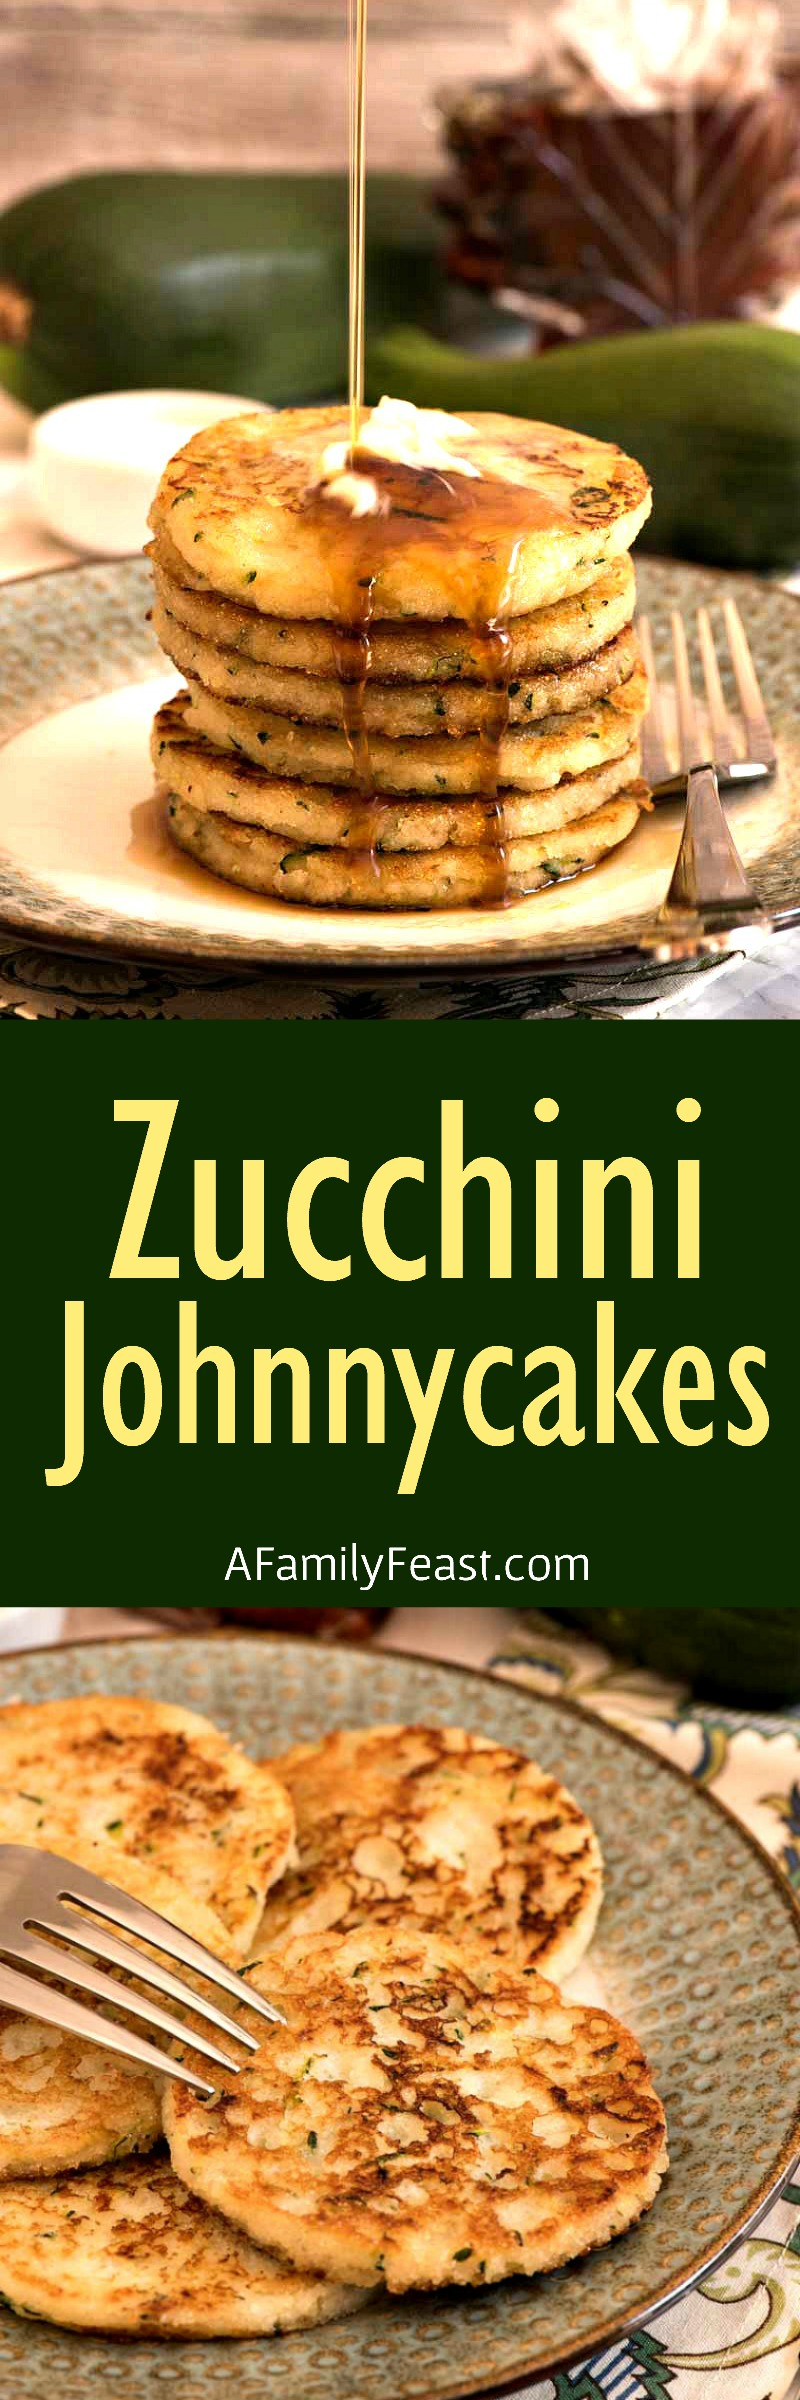 Zucchini Johnnycakes are a delicious change-up to a New England classic recipe! Plus – they're another great way to cook with your summer garden zucchini.